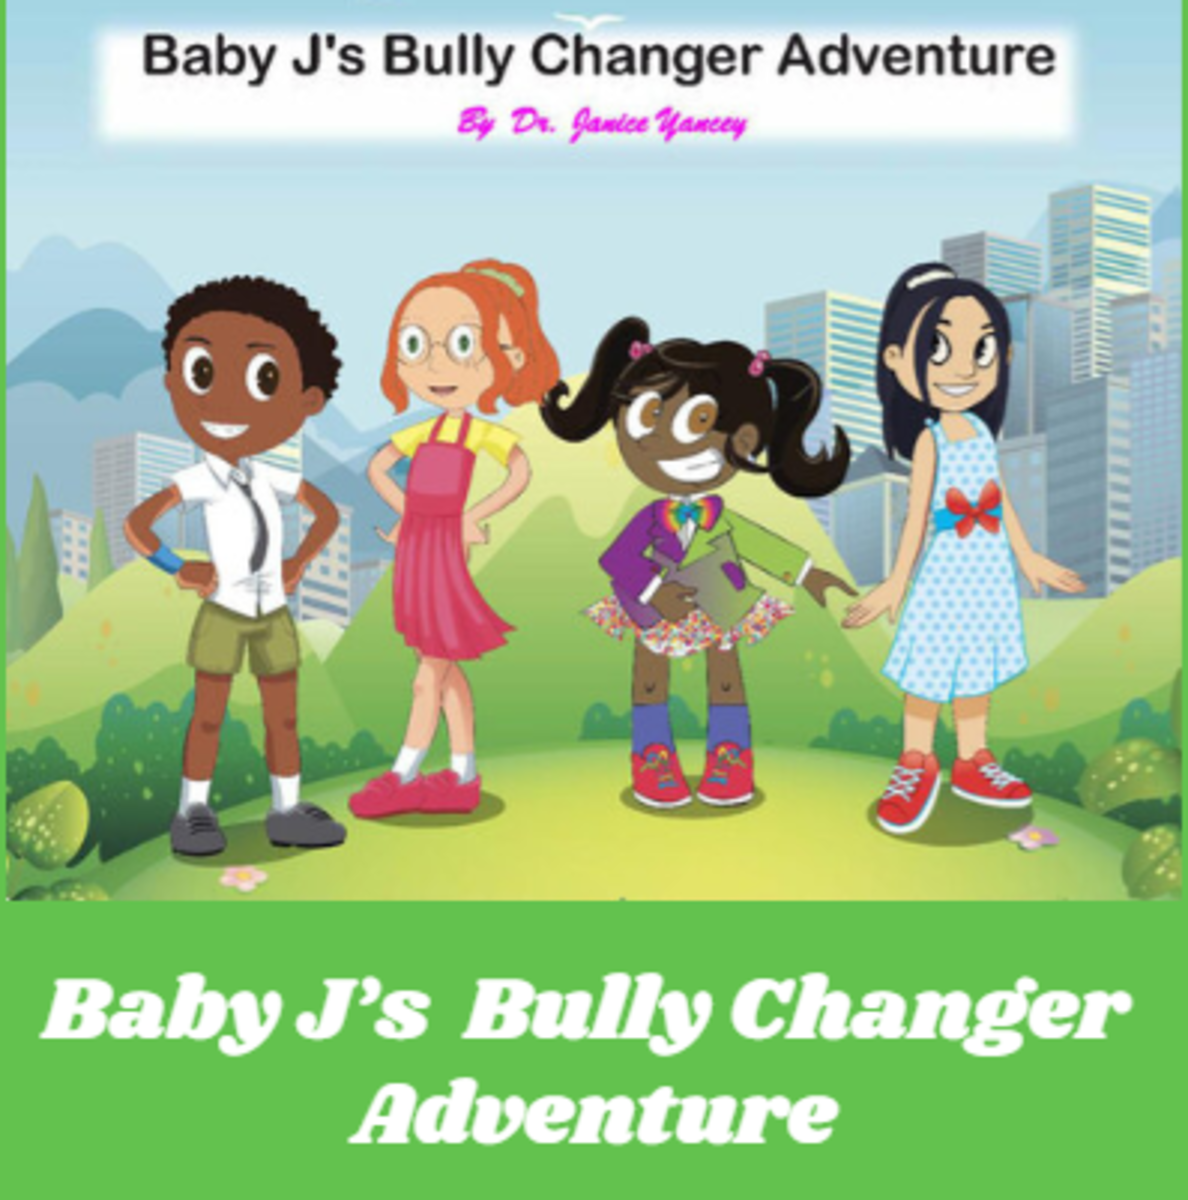 Baby J's friend Mona is bullied. Baby J is brave and stands up to Mona's bully. She teaches the bully about treating others fairly and with respect.